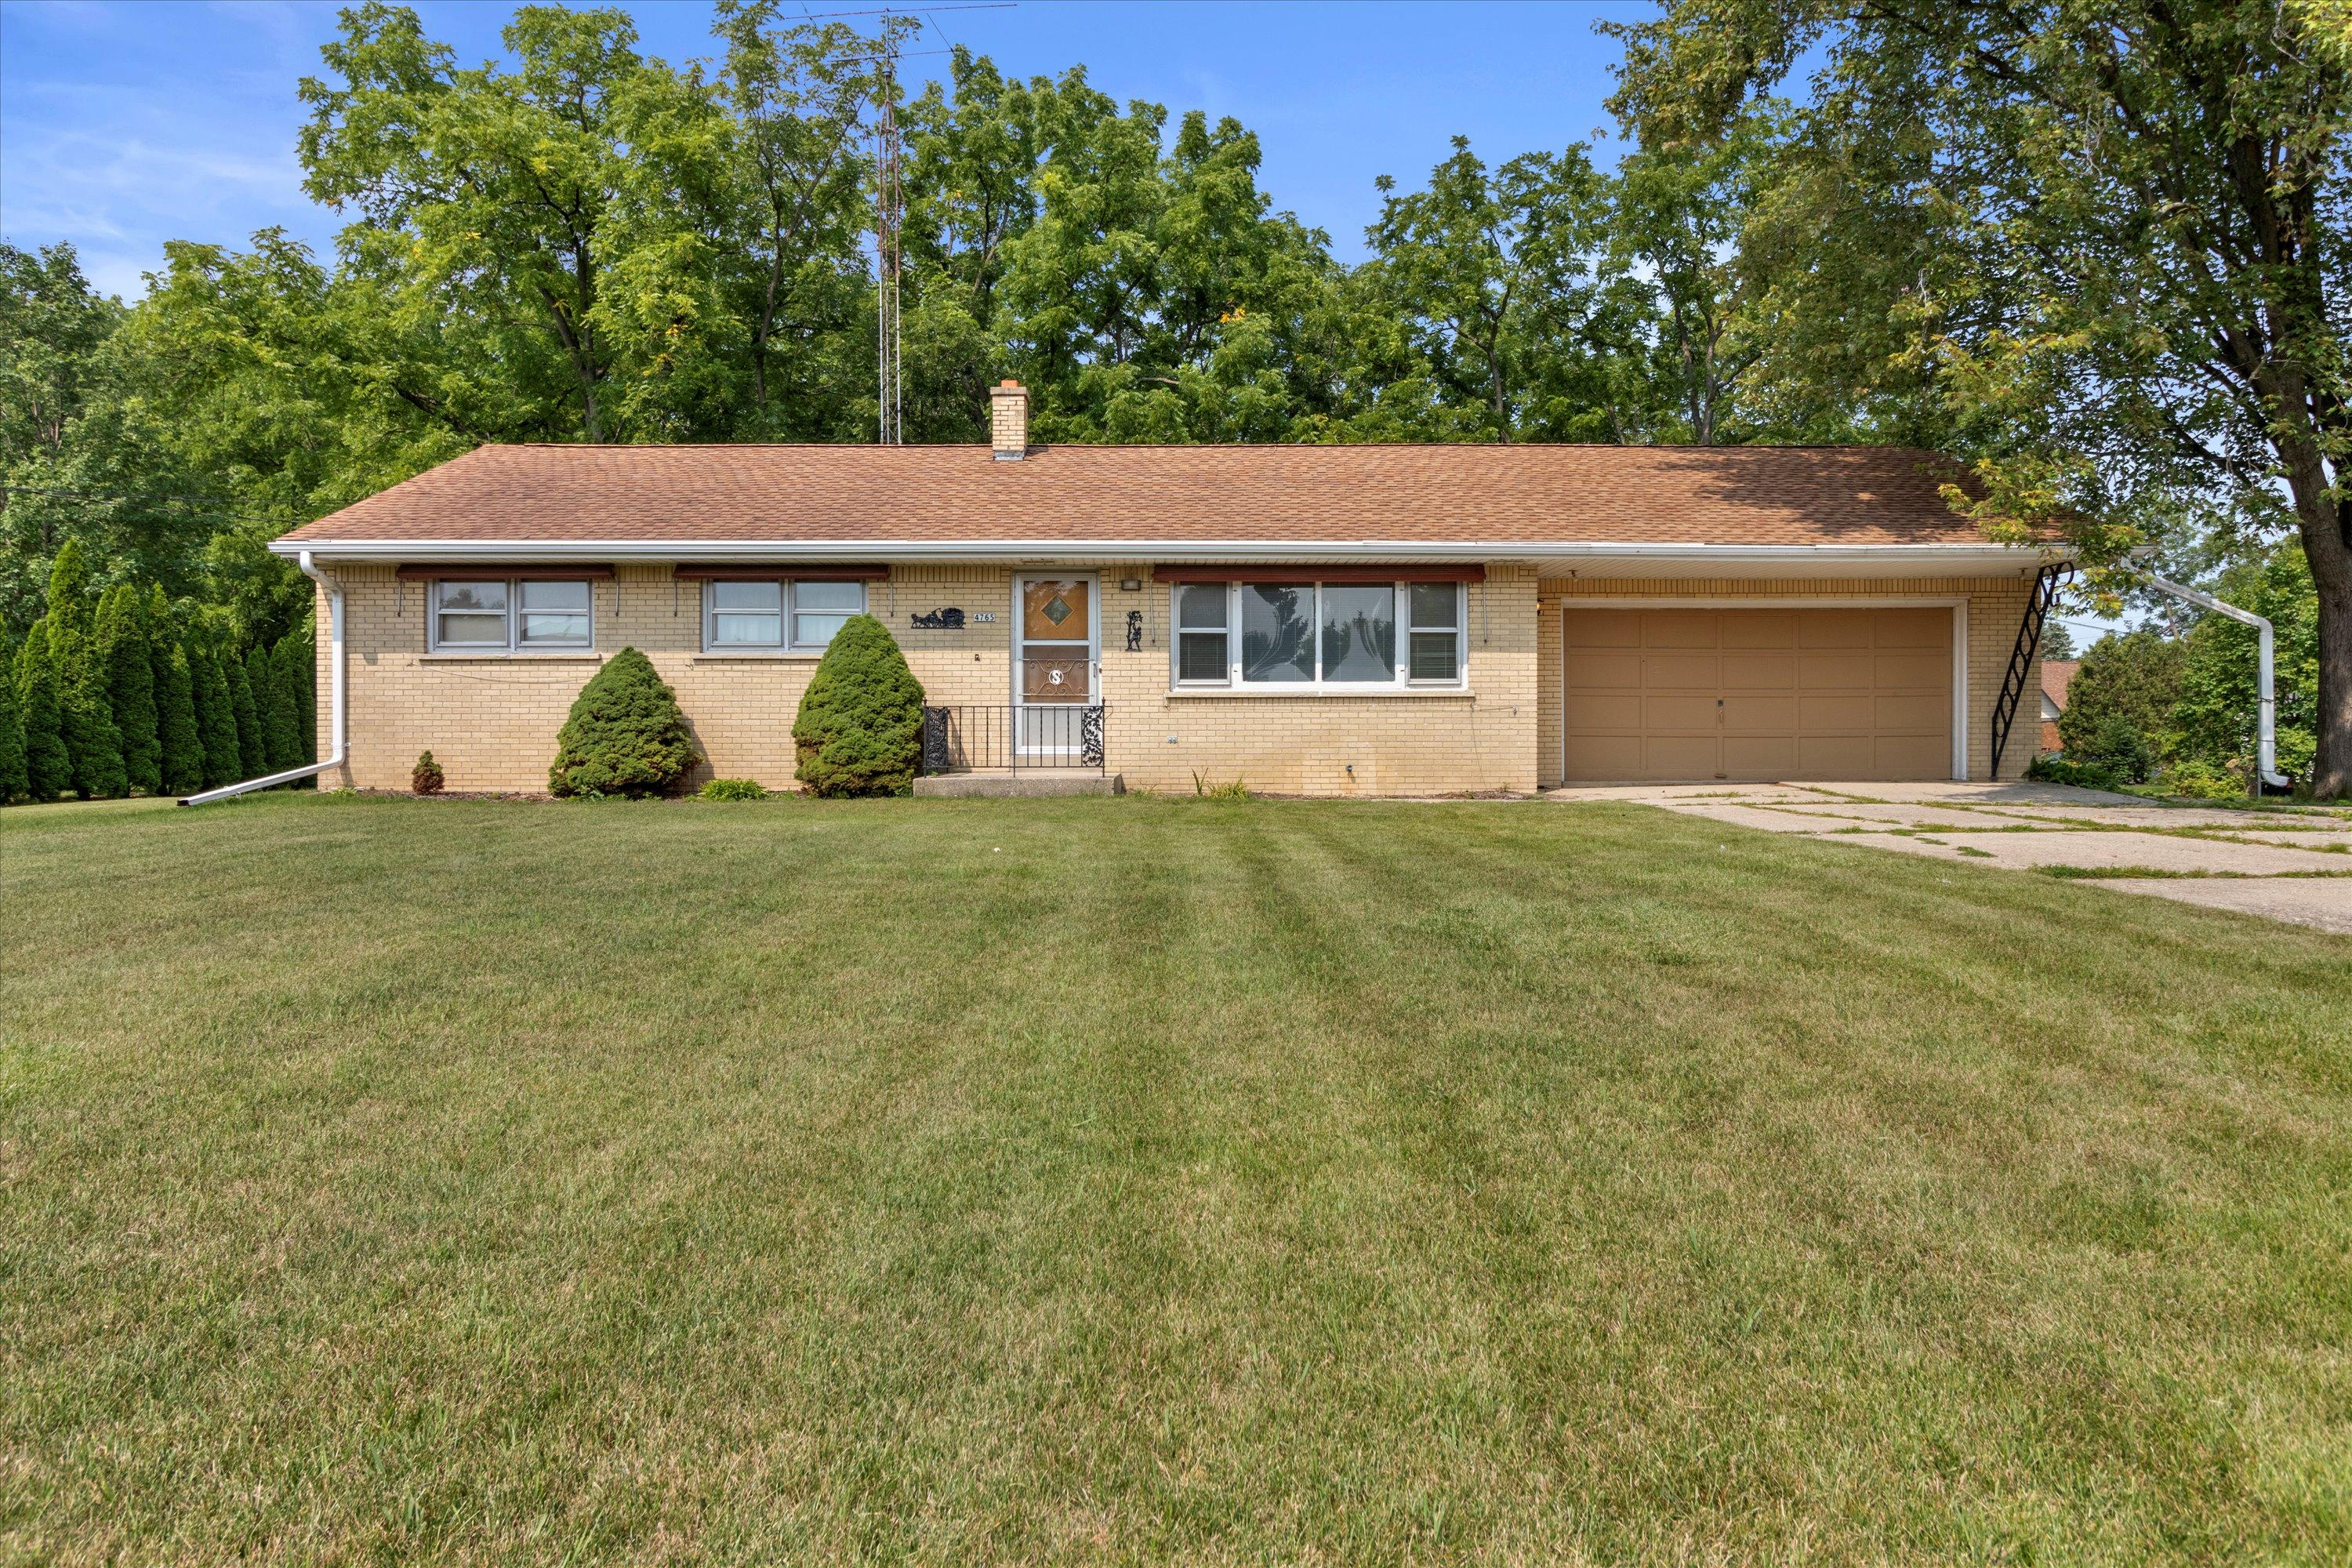 4765 135th St, Brookfield, Wisconsin 53005, 3 Bedrooms Bedrooms, 5 Rooms Rooms,2 BathroomsBathrooms,Single-Family,For Sale,135th St,1754436